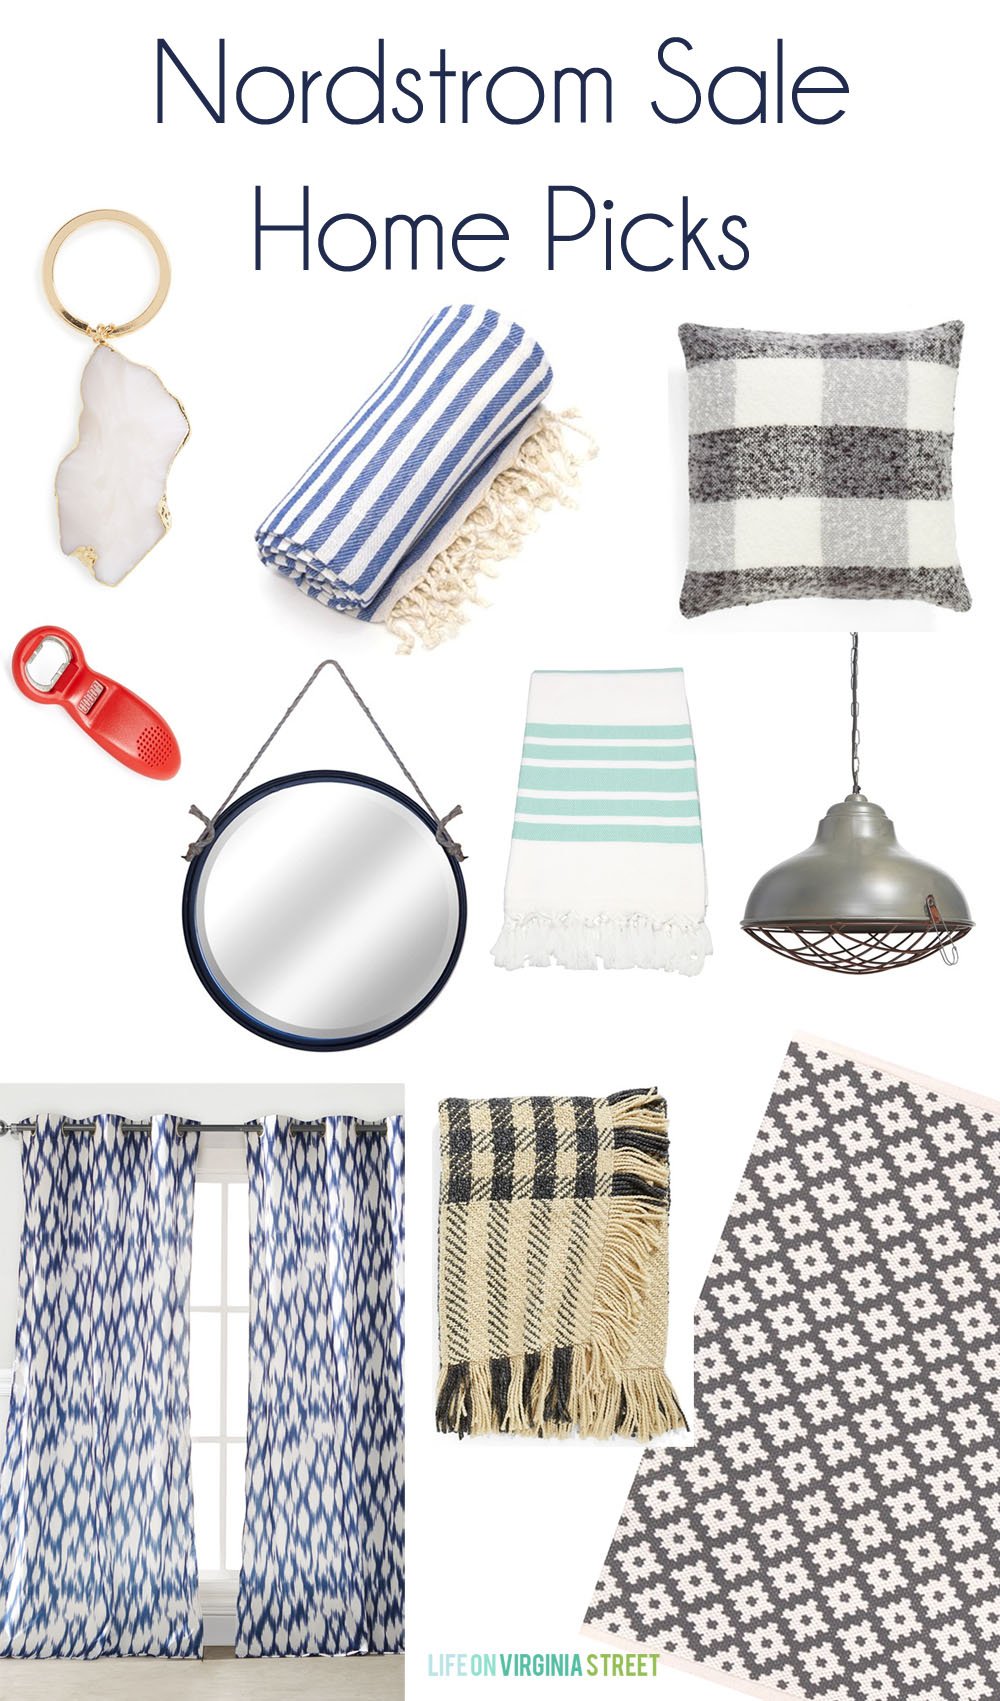 Nordstrom Home Sale Picks